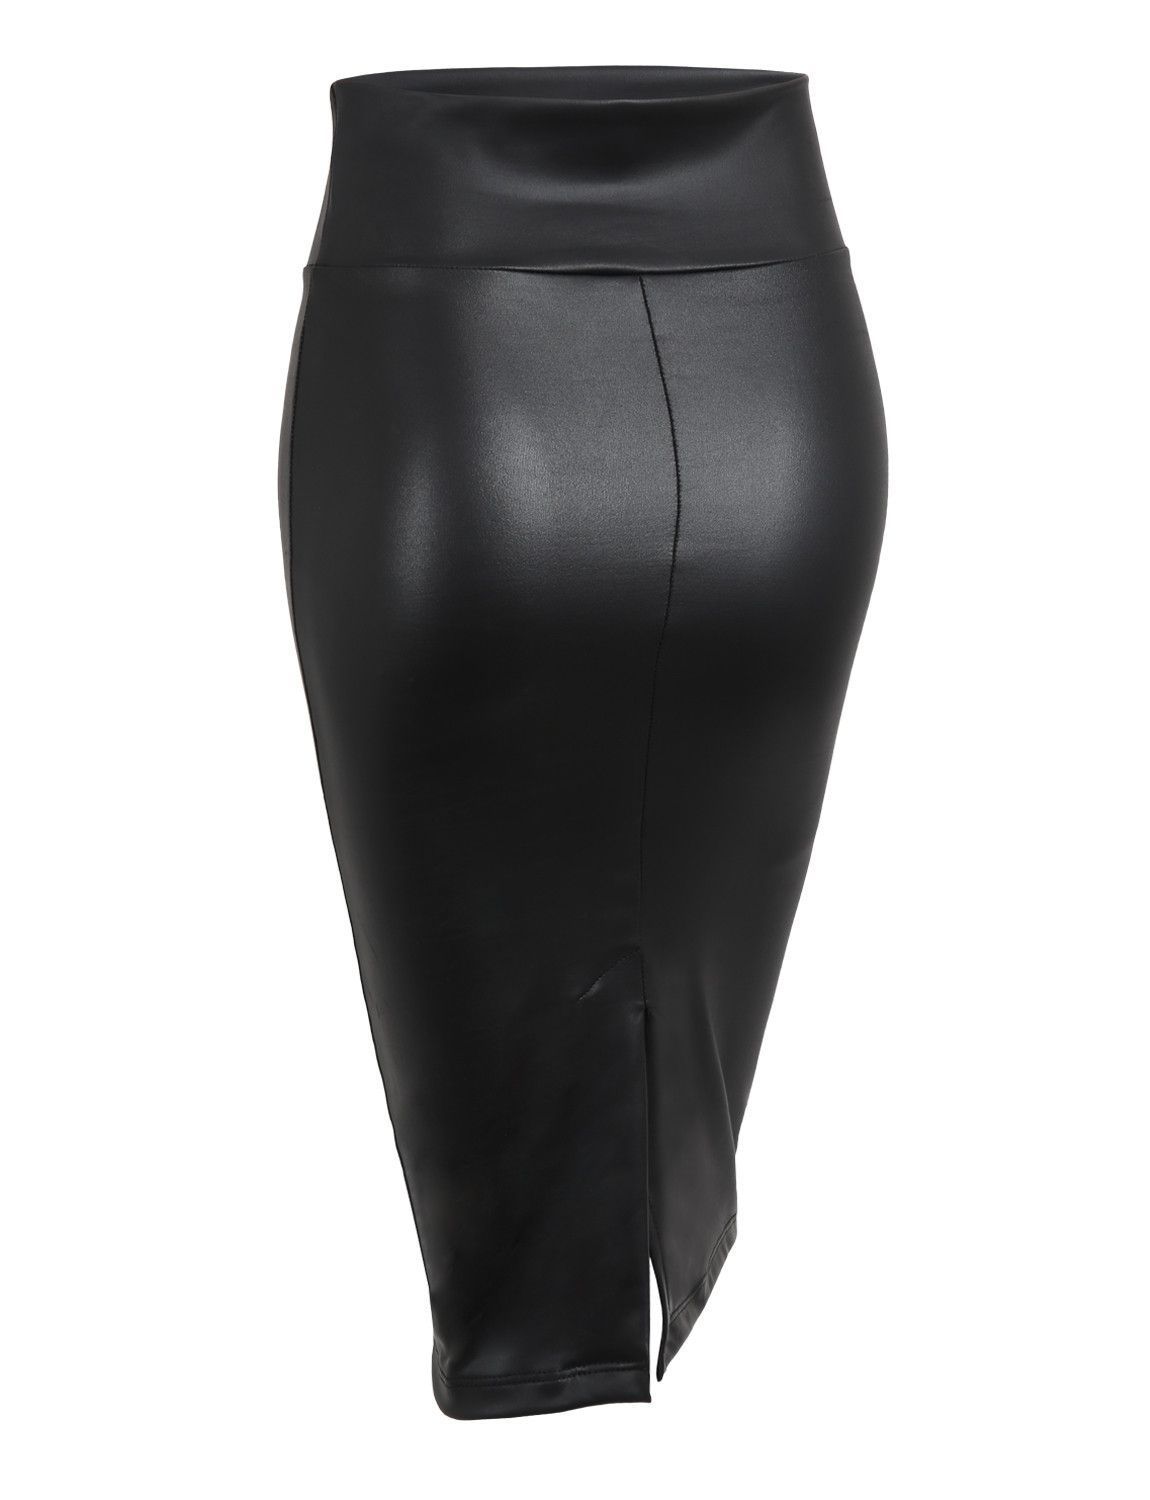 Size 14 New Shop Clearance Ladies Black Knee Length Faux Leather Pencil Skirt